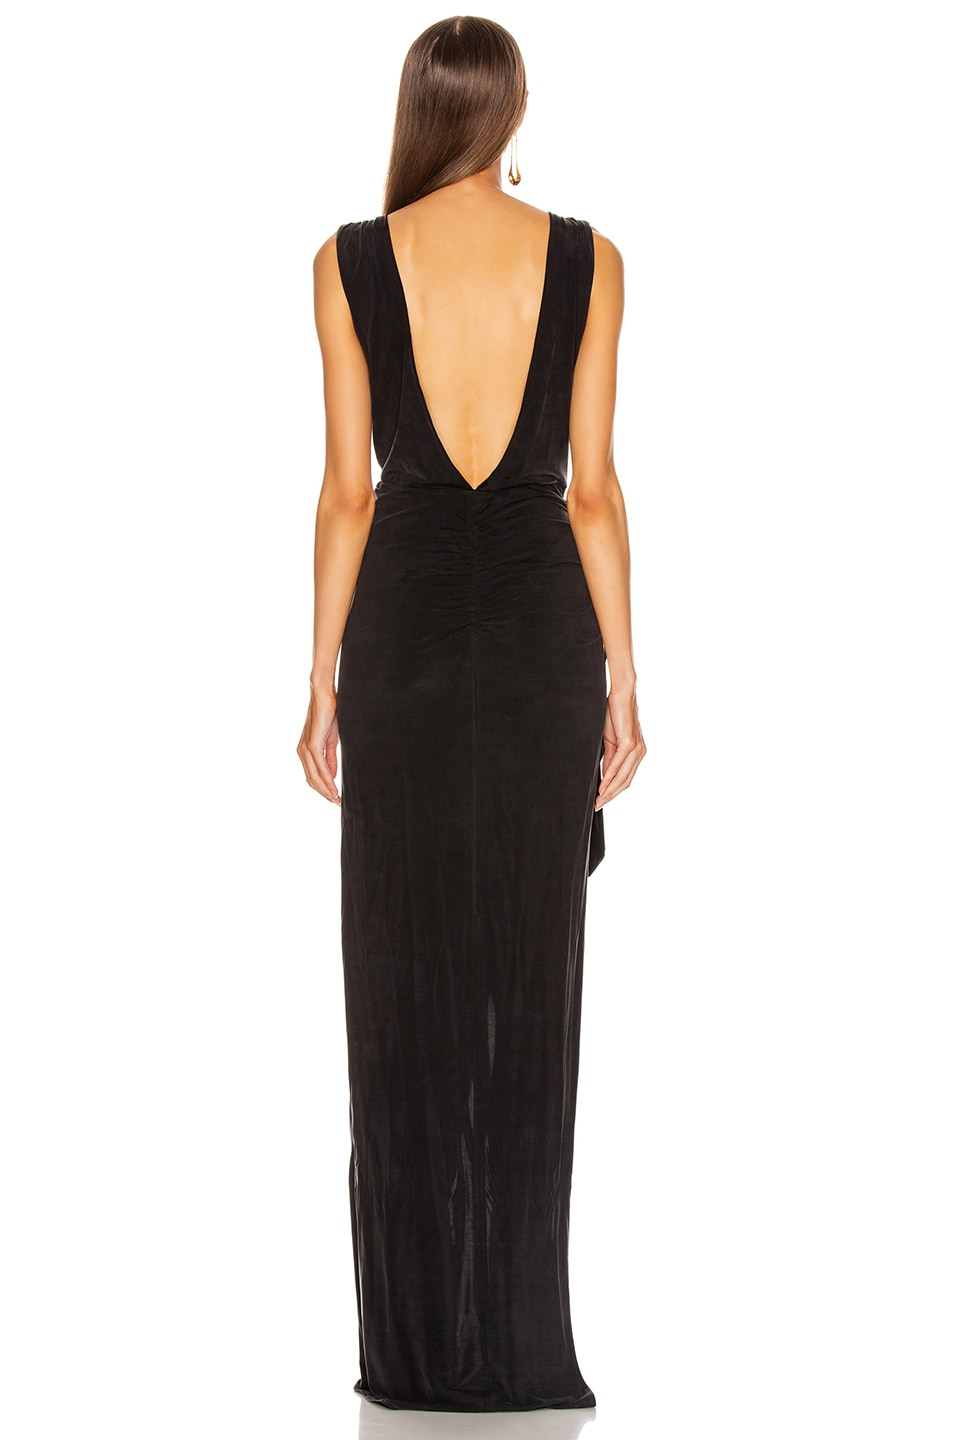 Image 4 of Rêve Riche Adnana Dress in Black